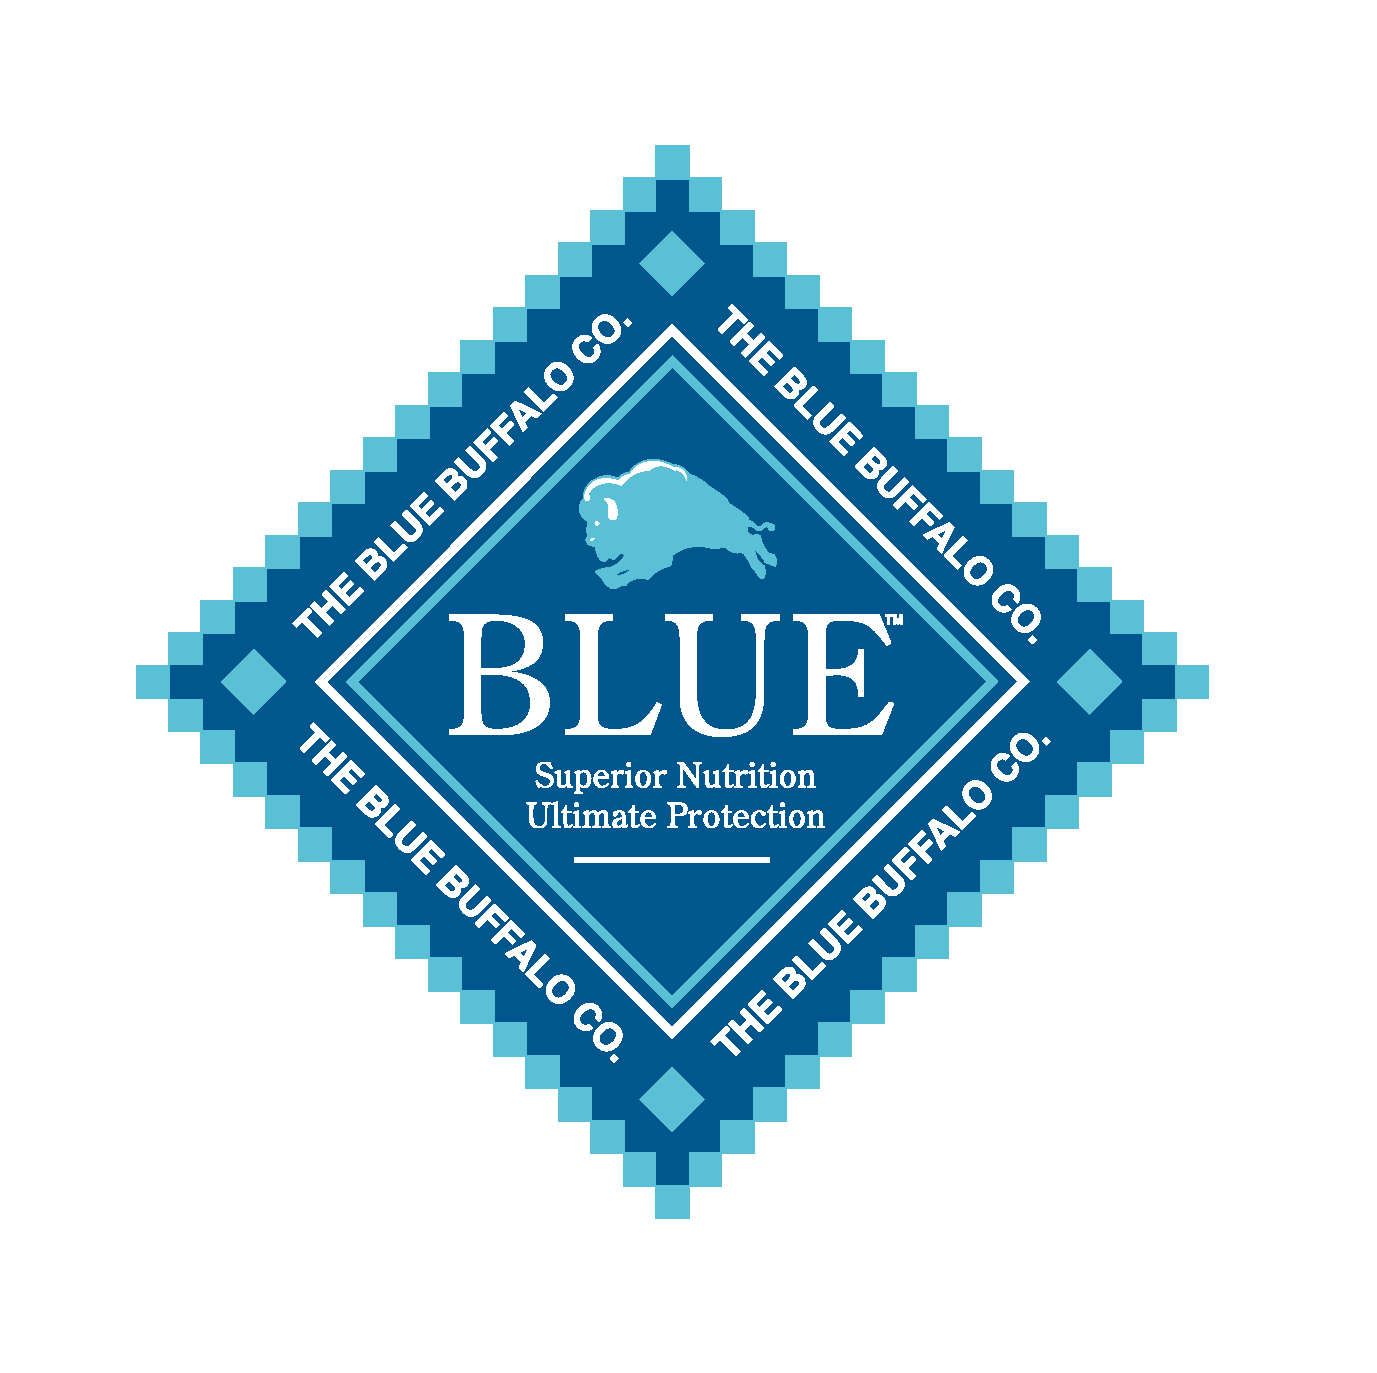 Blue Buffalo Cat Food Reviews 2021: Should You Buy It? 1